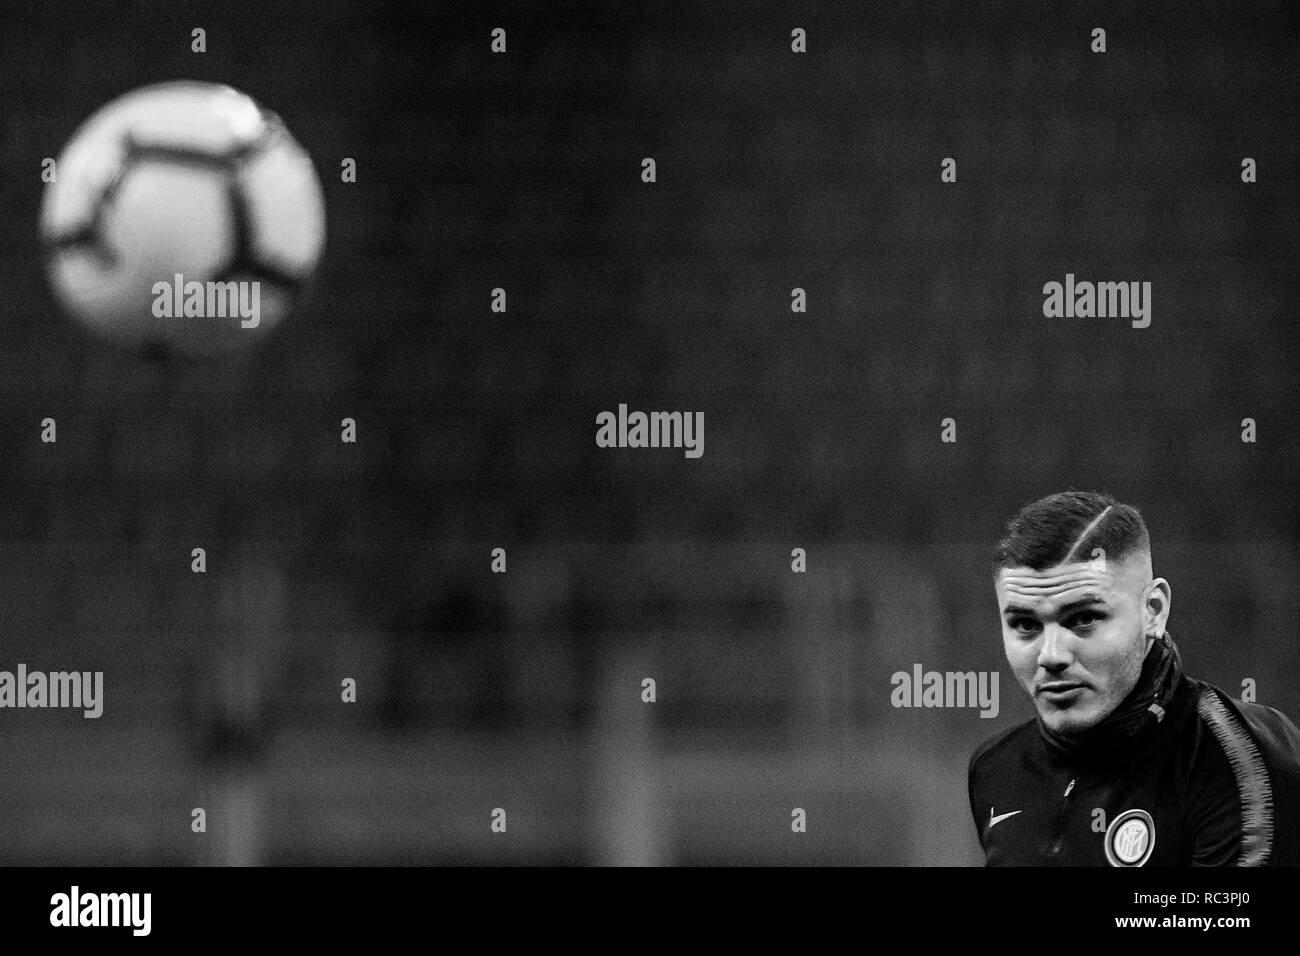 Black and White image of Forward Mauro Icardi (Inter) looking the ball before the Italian Cup 'Coppa Italia' football match, Inter Milan vs Benevento Calcio at San Siro Meazza Stadium in Milan, Italy on 13 January 2019. The football match is played behind closed doors after Napoli's Senegalese player Kalidou Koulibaly was subject to racist chants by FC Internazionale's 'ultra' fans during the Boxing Day match. Credit: Piero Cruciatti/Alamy Live News - Stock Image